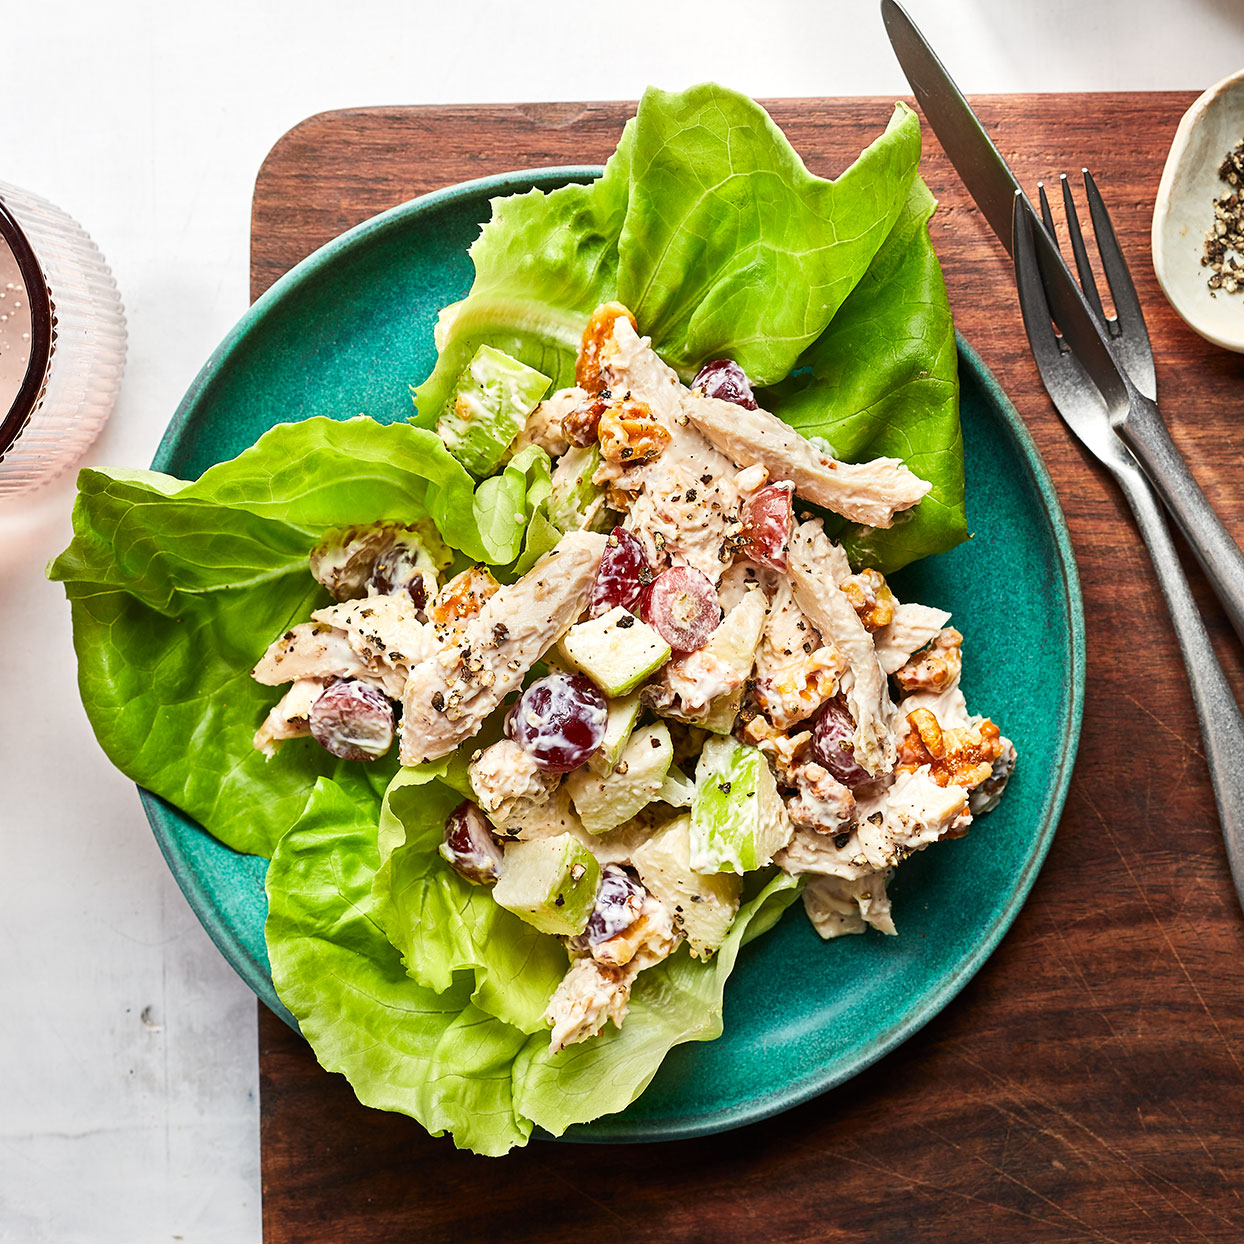 Try this crunchy, healthy salad recipe anytime you have leftover turkey or chicken. It makes a great lunch served on a bed of delicate butterhead lettuce leaves.